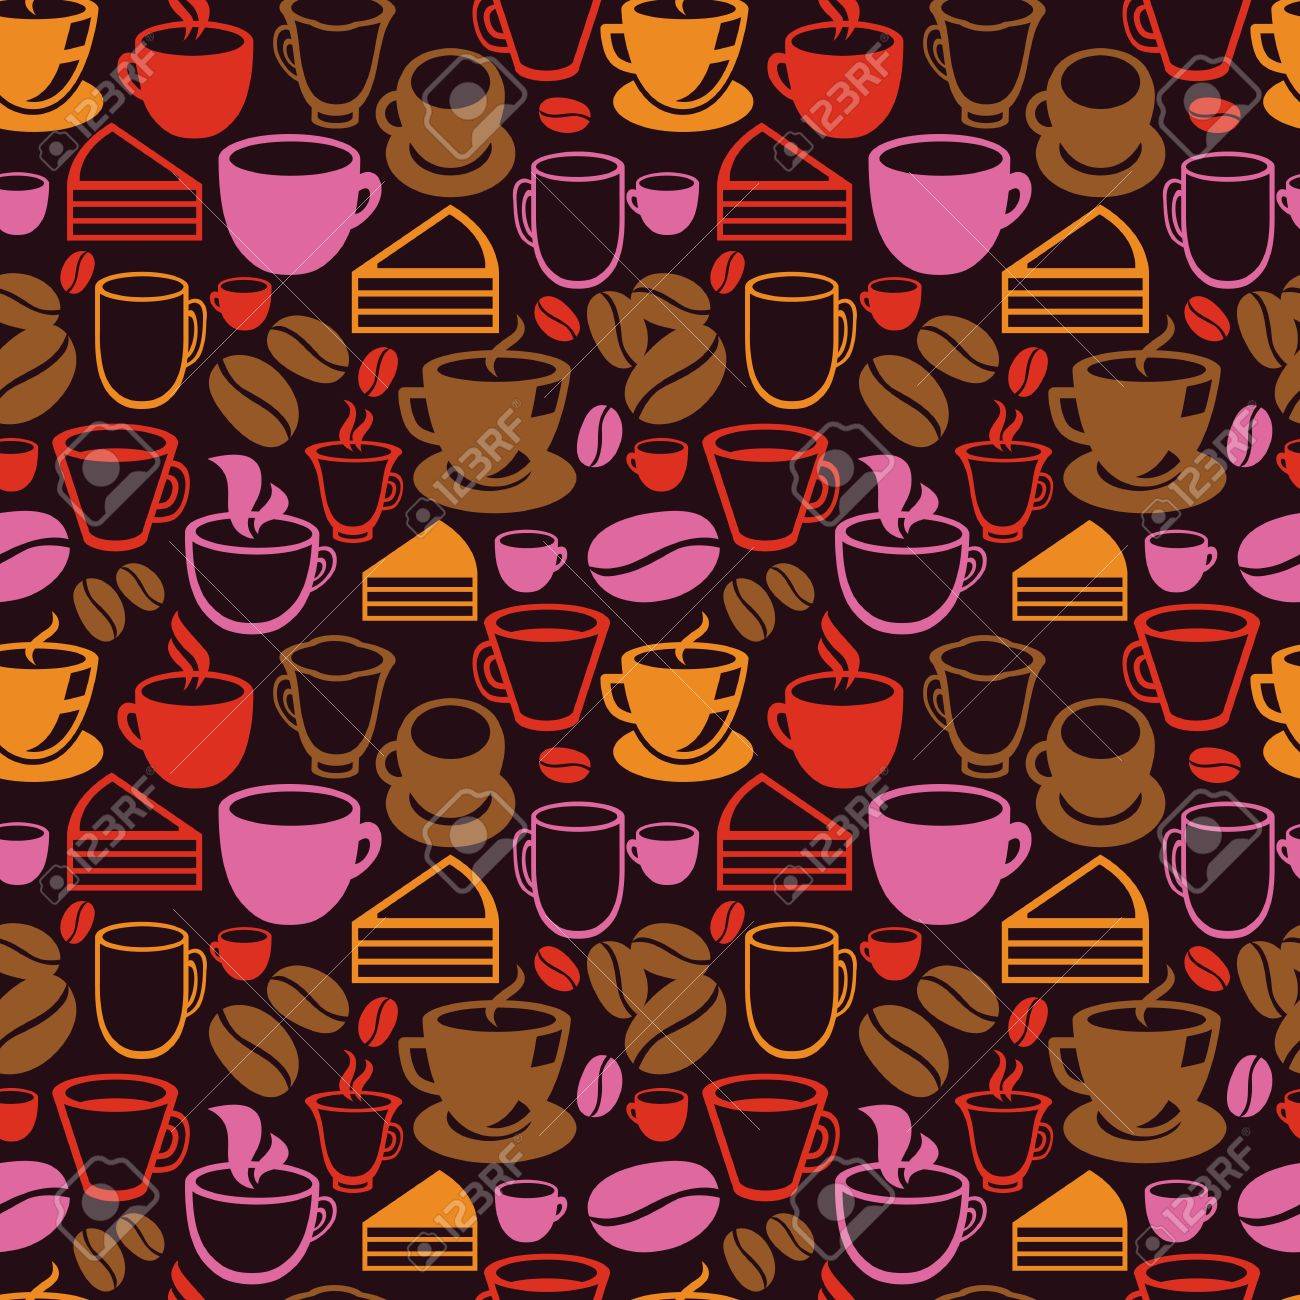 Vector seamless pattern with tea and coffee cups - background in vintage style Stock Vector - 20472358